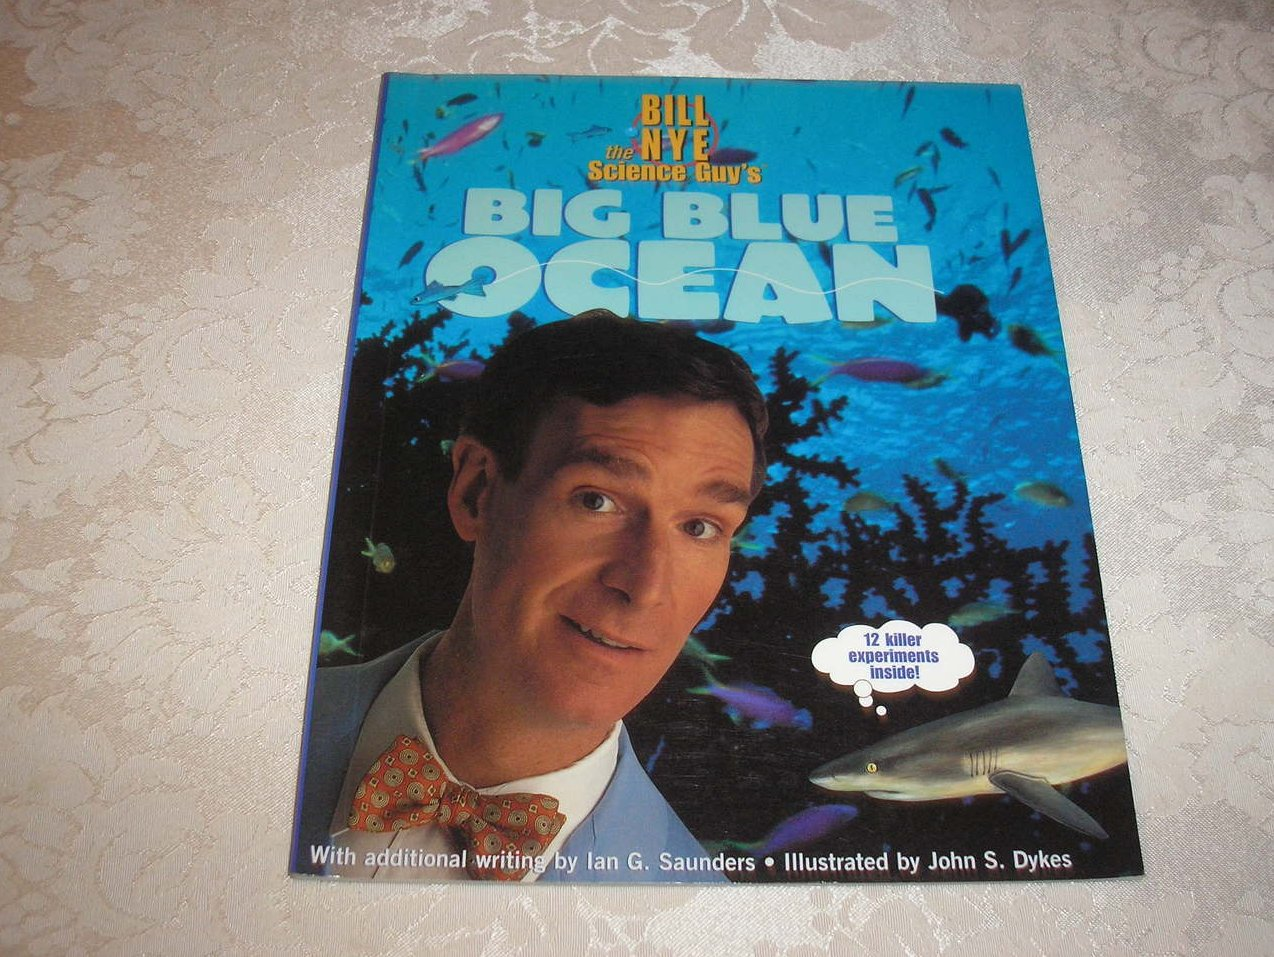 Bill Nye the Science Guy's Big Blue Ocean very good sc